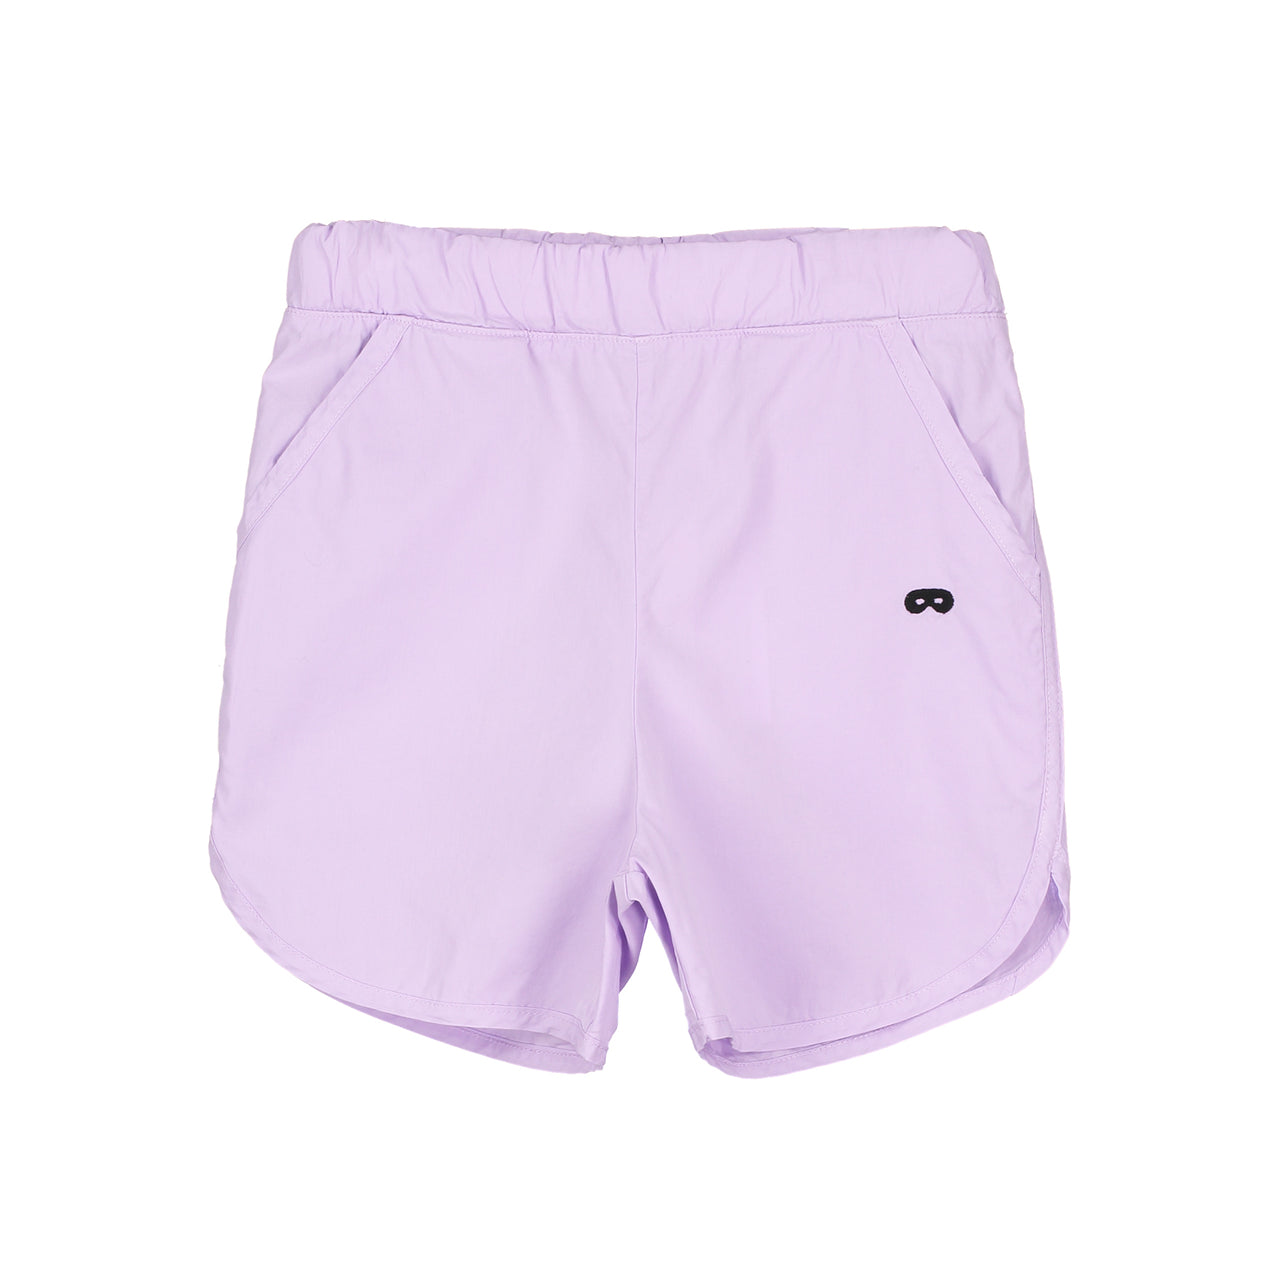 Cotton SOS Shorts